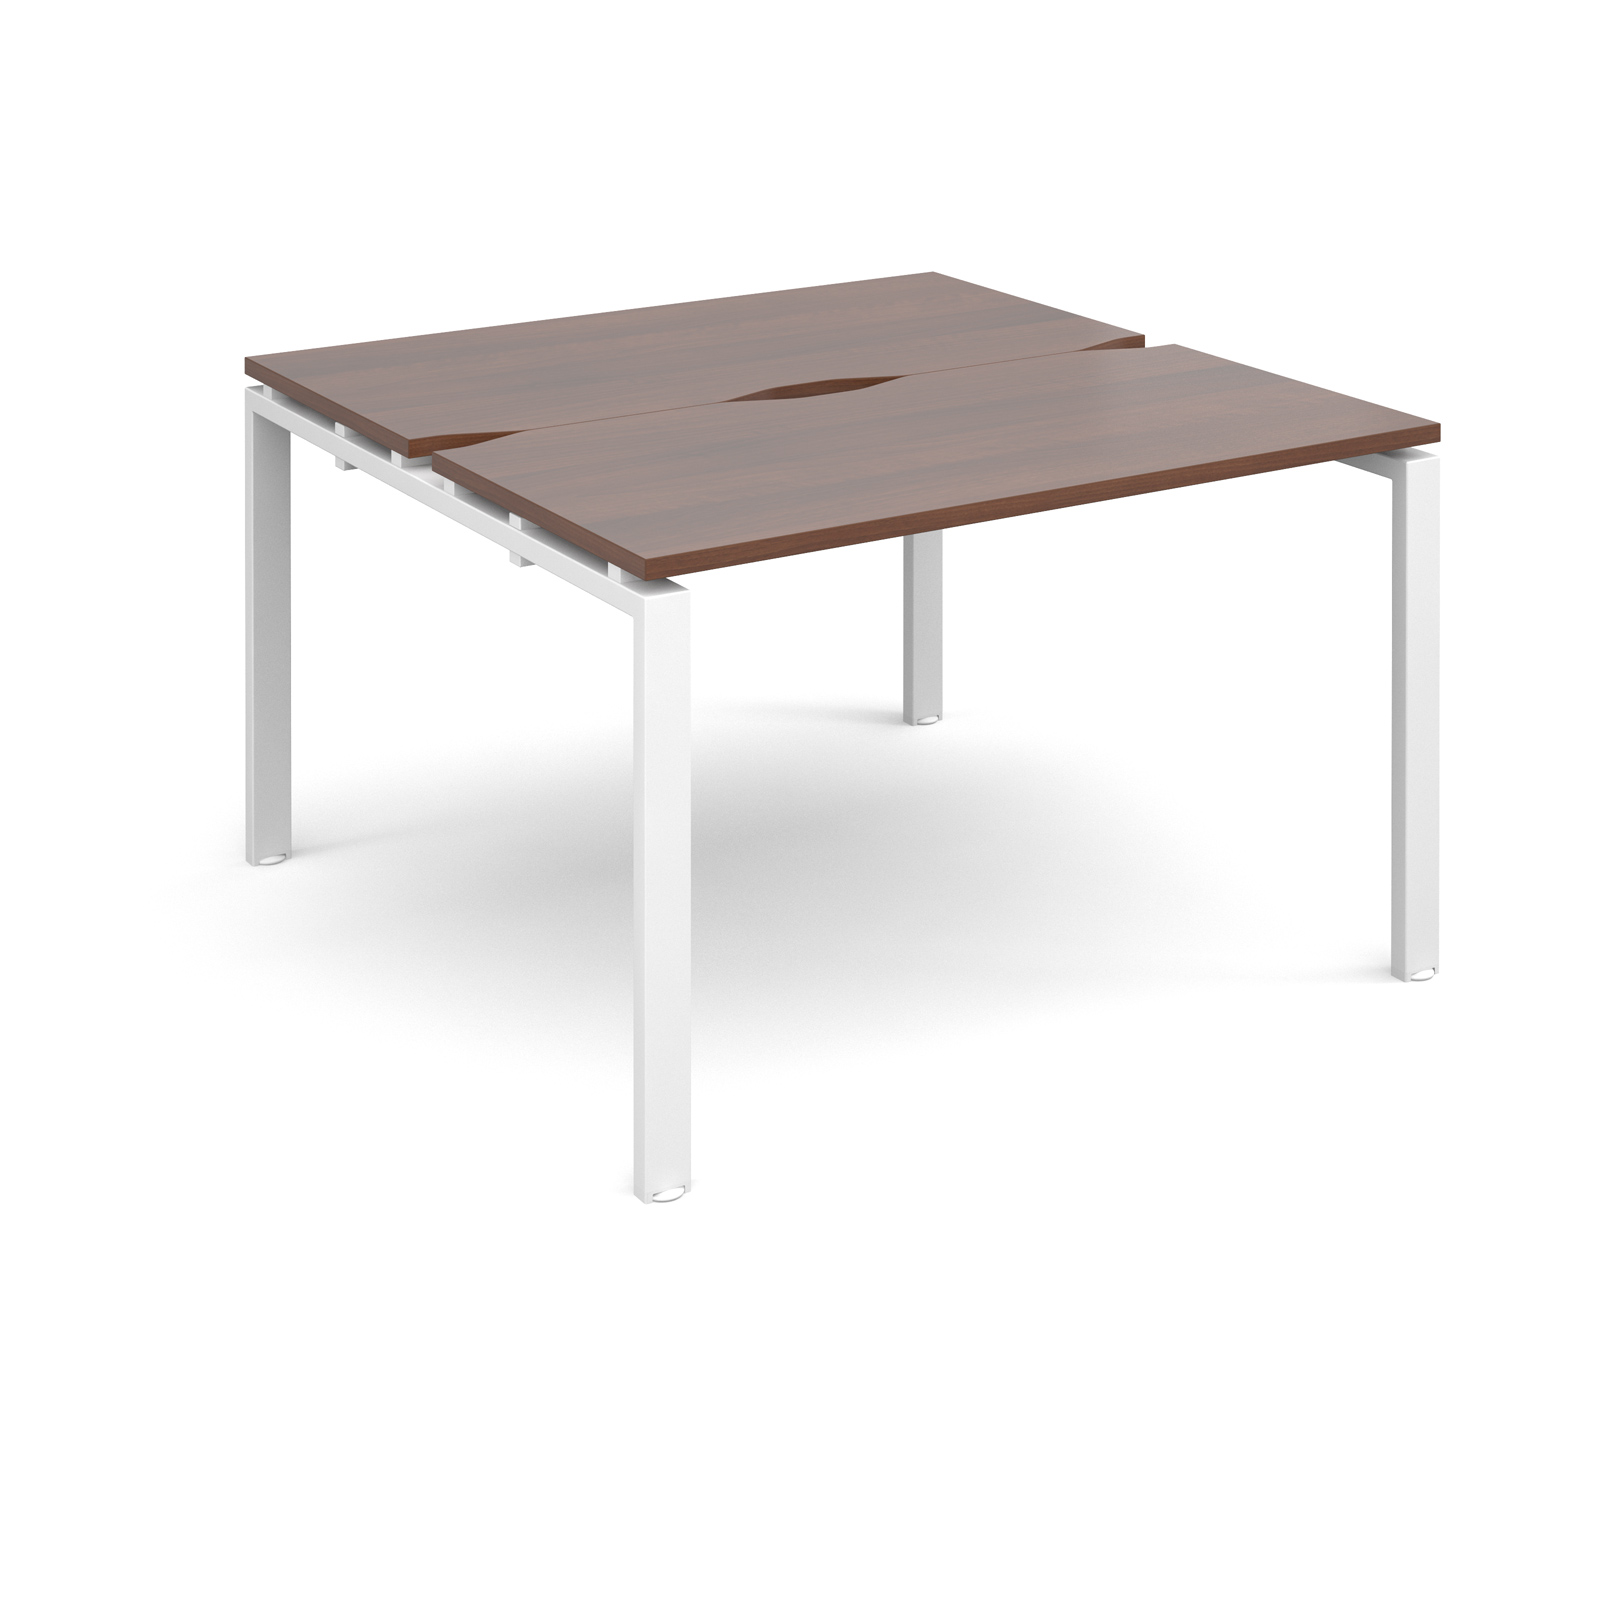 Adapt II 1200 x 1200 x 725mm Back to Back Desk - Walnut / White Leg